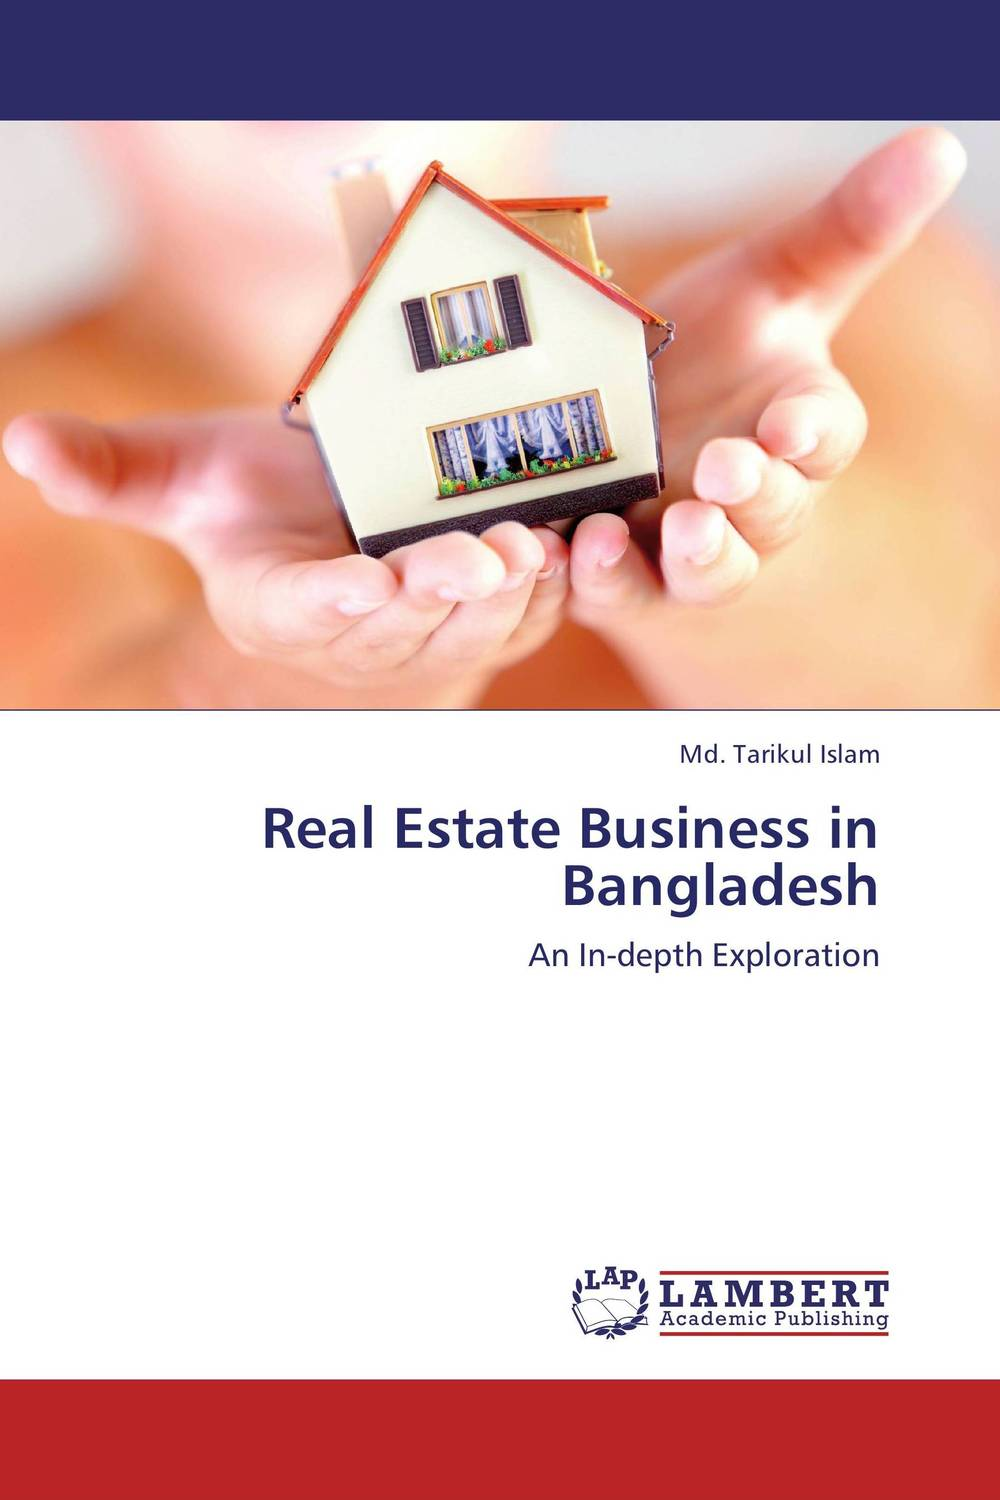 Real Estate Business in Bangladesh wendy patton making hard cash in a soft real estate market find the next high growth emerging markets buy new construction at big discounts uncover hidden properties raise private funds when bank lending is tight